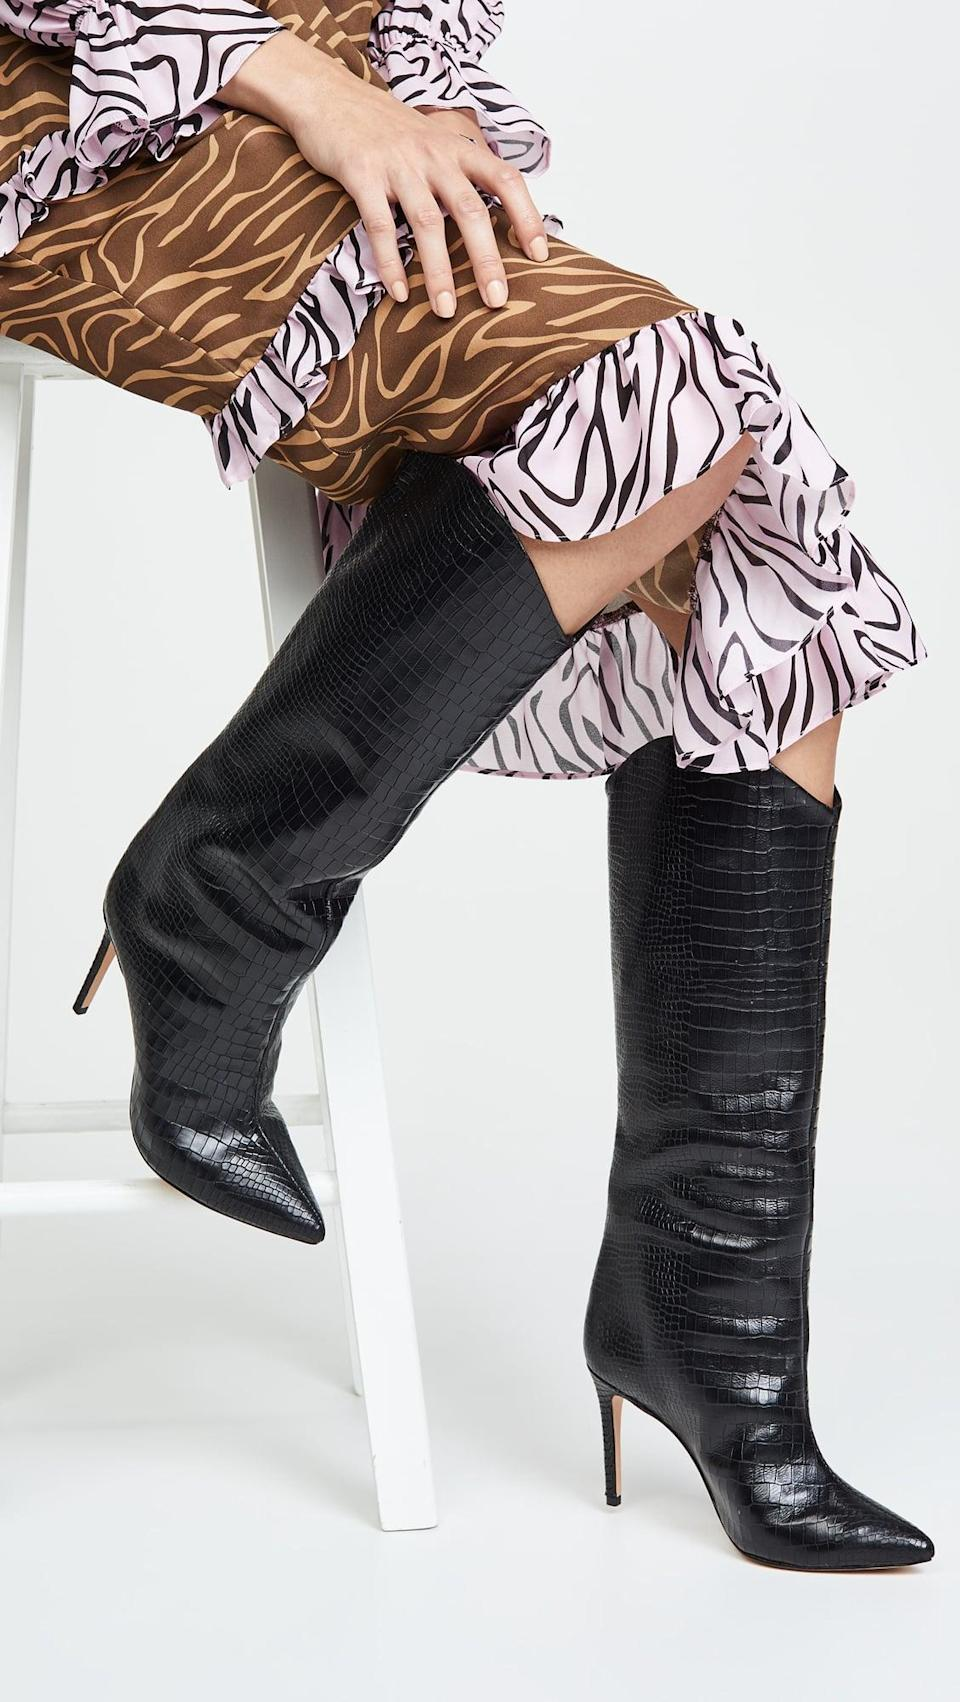 <p>These <span>Schutz Maryana Tall Boots</span> ($238) are a great option when you want a little lift. We love them with a long dress or shorts for a night out.</p>